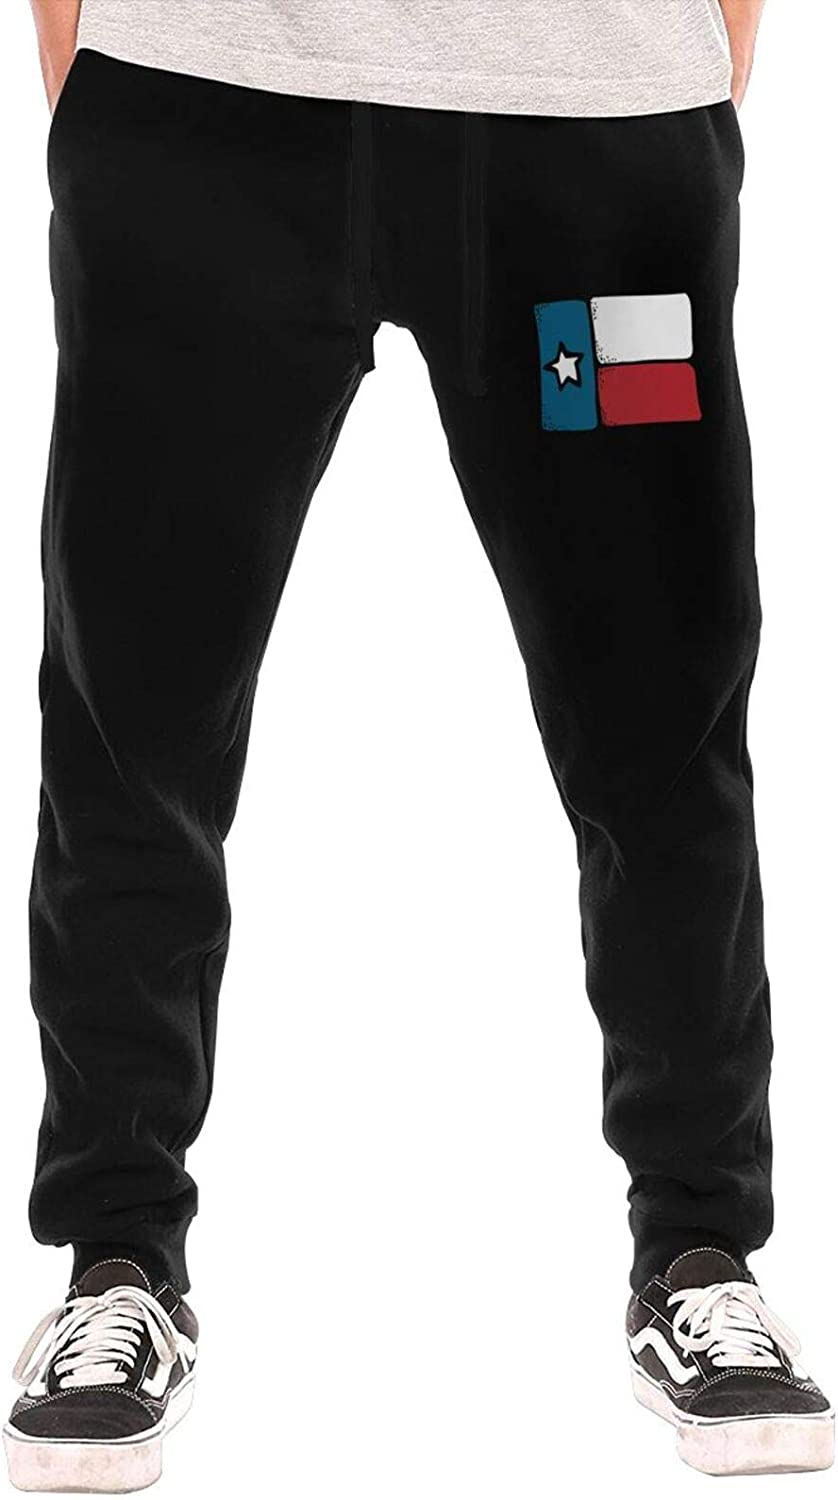 Hhill Swater Vintage Texas Flag Pants Deluxe Casual Men's Joggers Seattle Mall Work